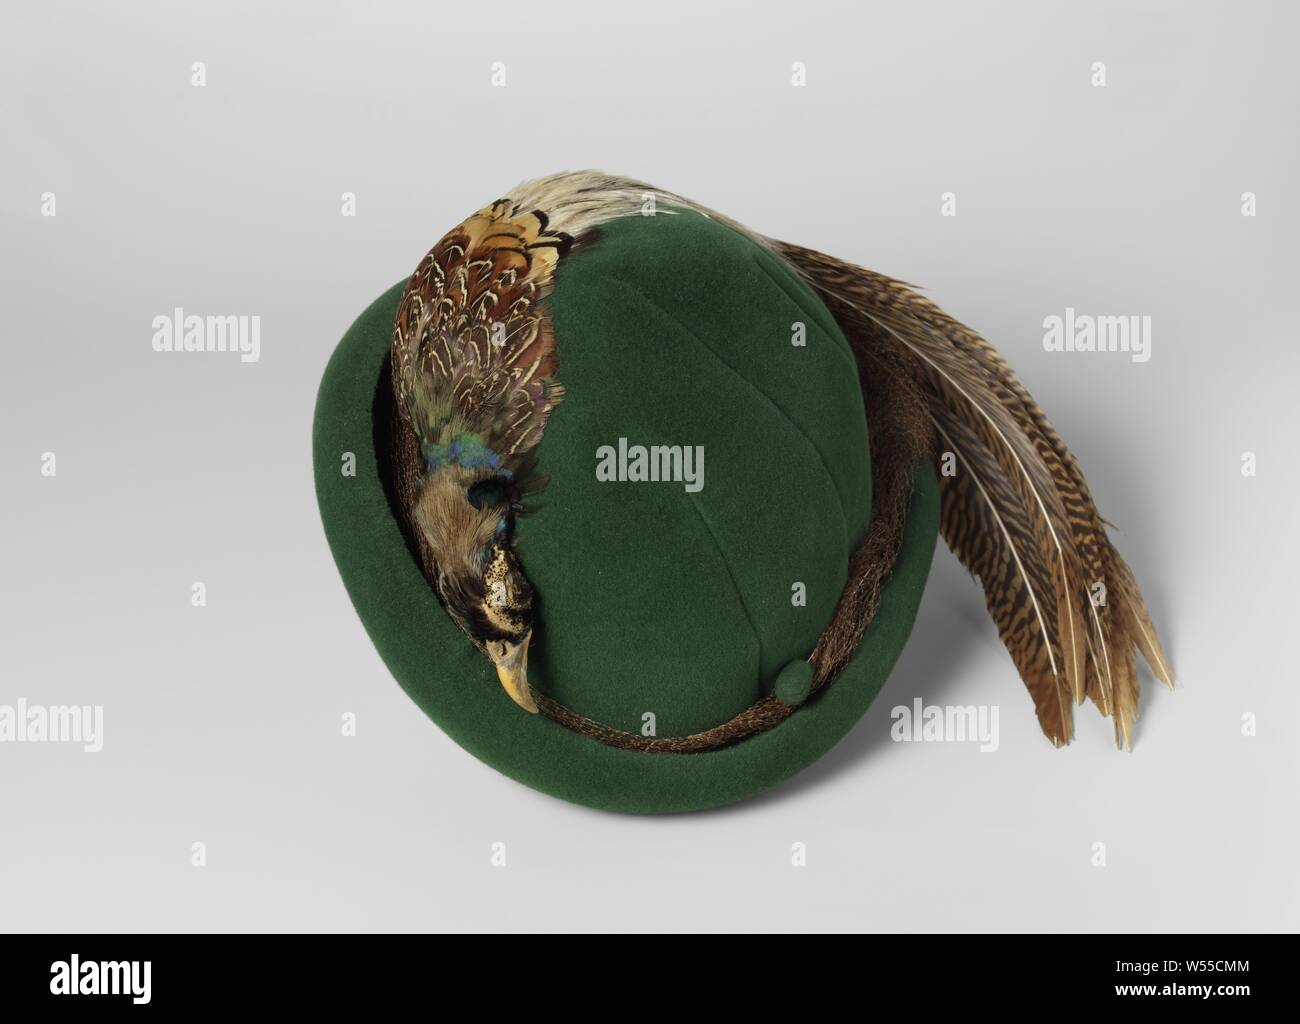 000f2f6a2 Cloche Hat Stock Photos & Cloche Hat Stock Images - Alamy